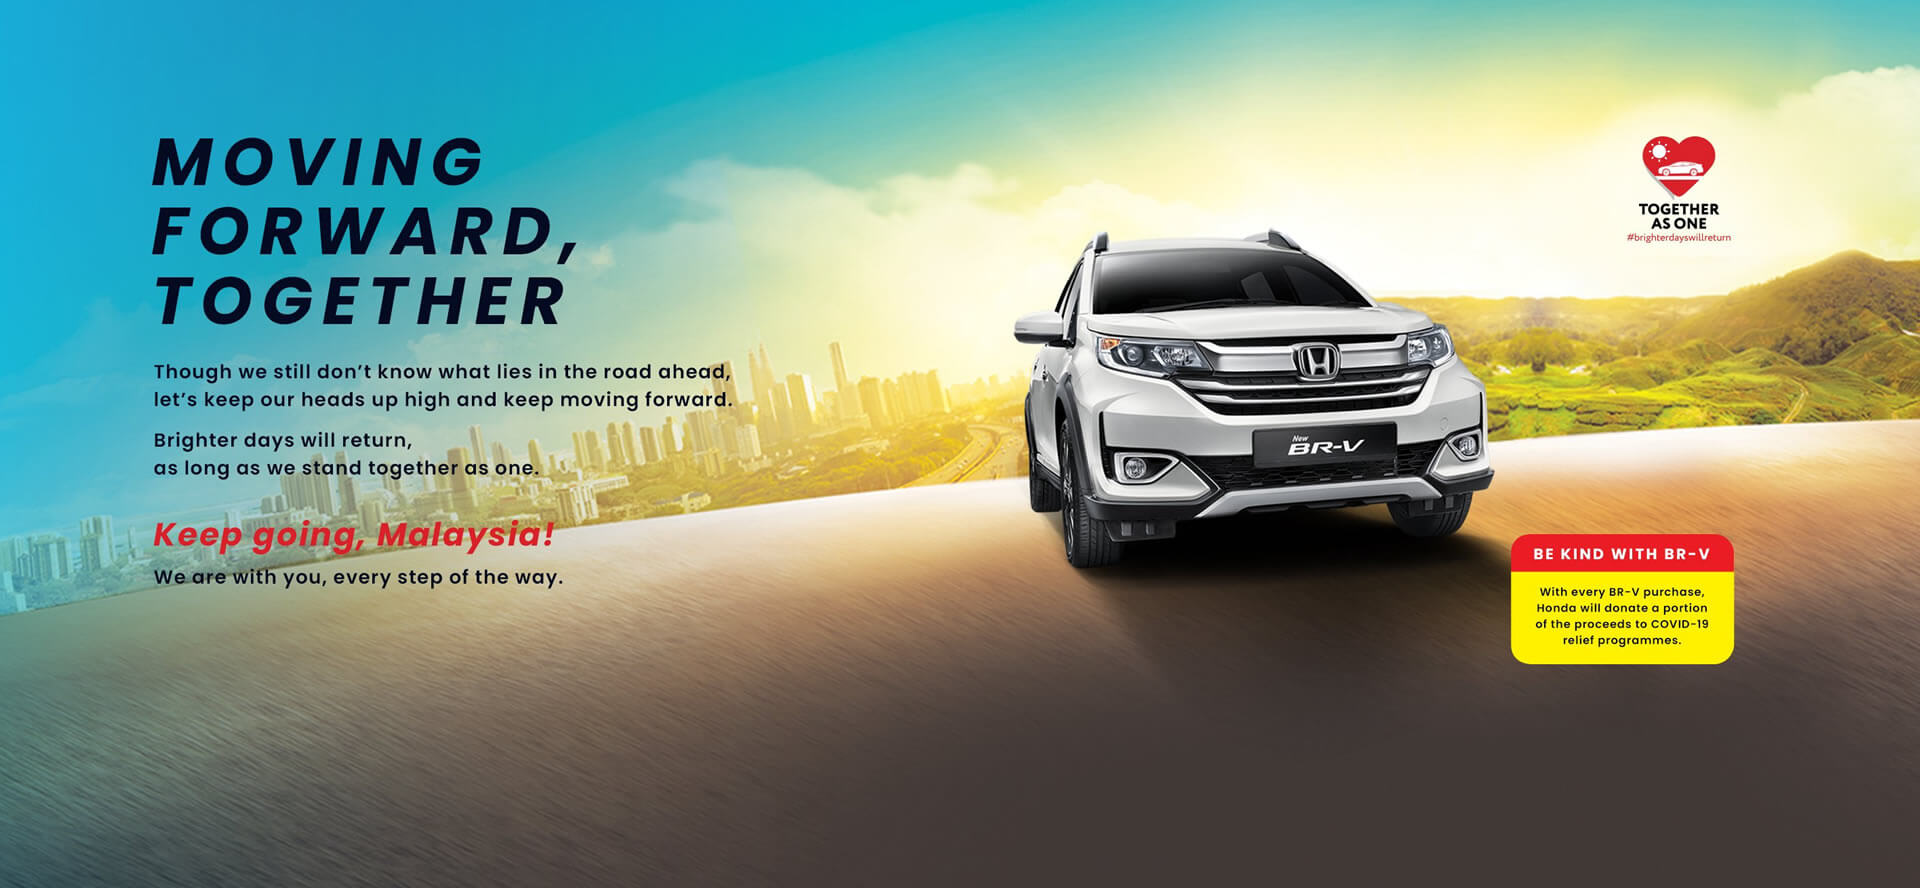 The All New Honda BR-V - Versatile For All